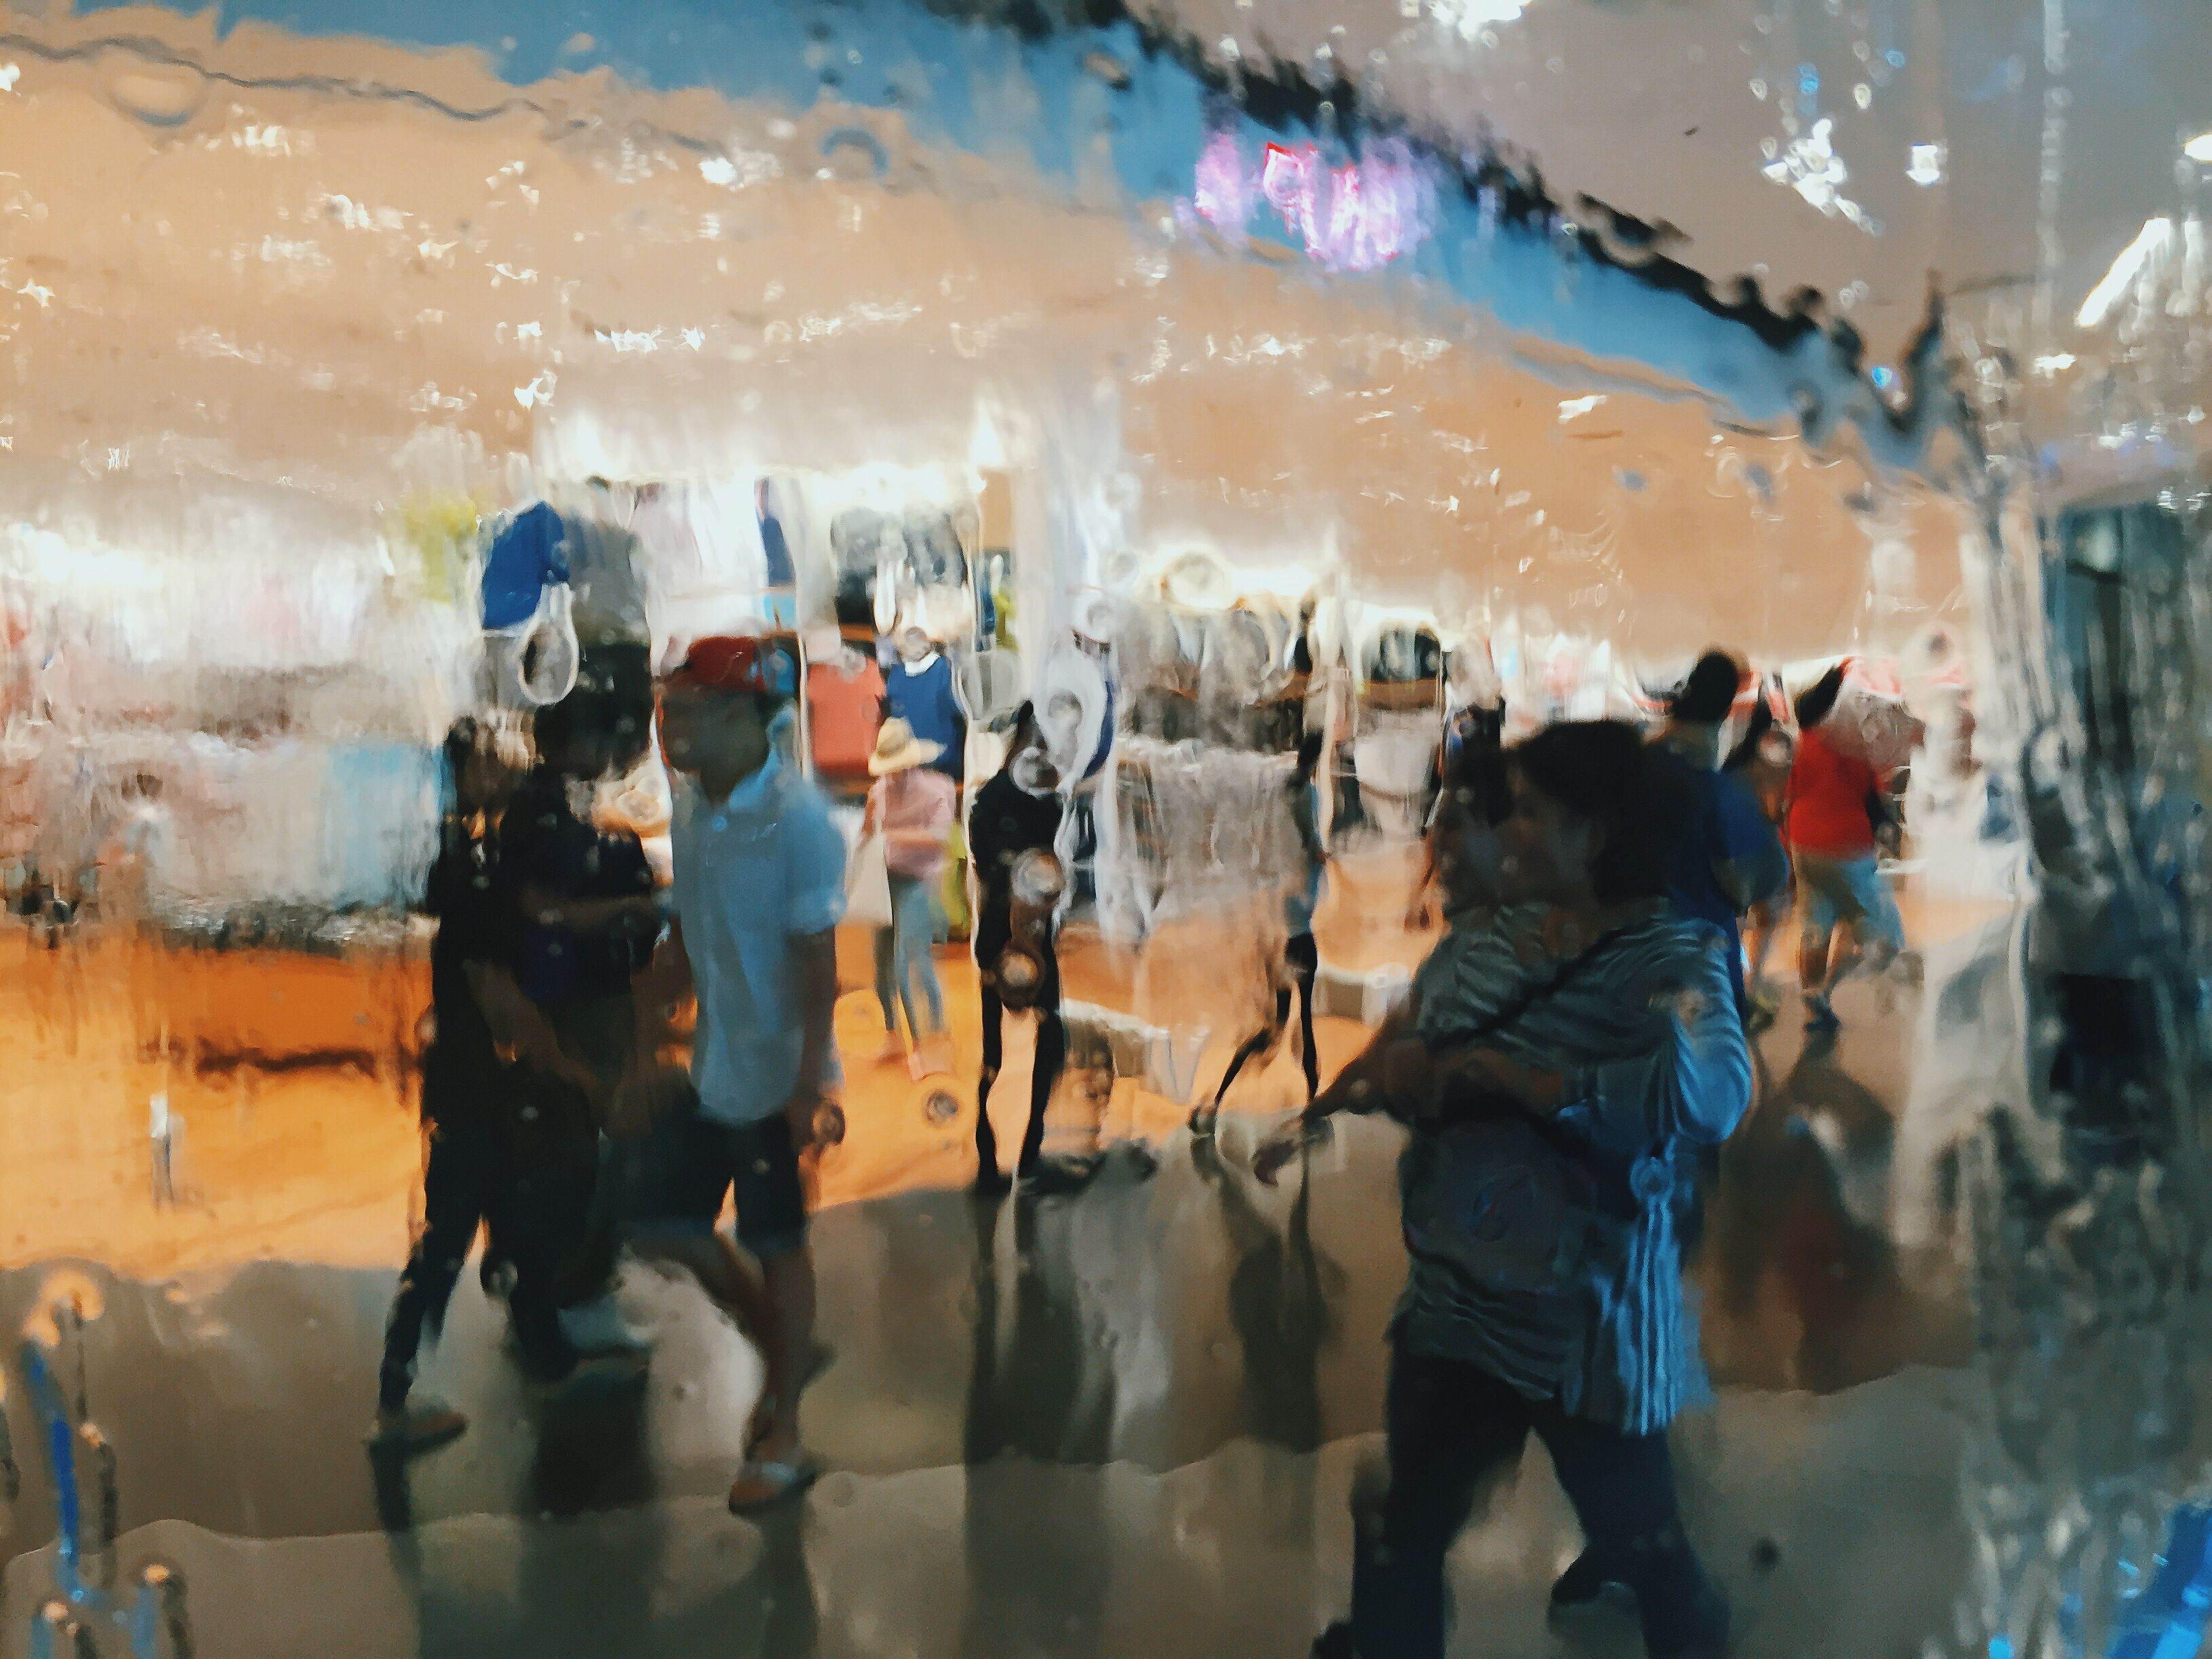 indoors, men, lifestyles, leisure activity, person, standing, glass - material, large group of people, rear view, transparent, water, casual clothing, togetherness, walking, wet, medium group of people, motion